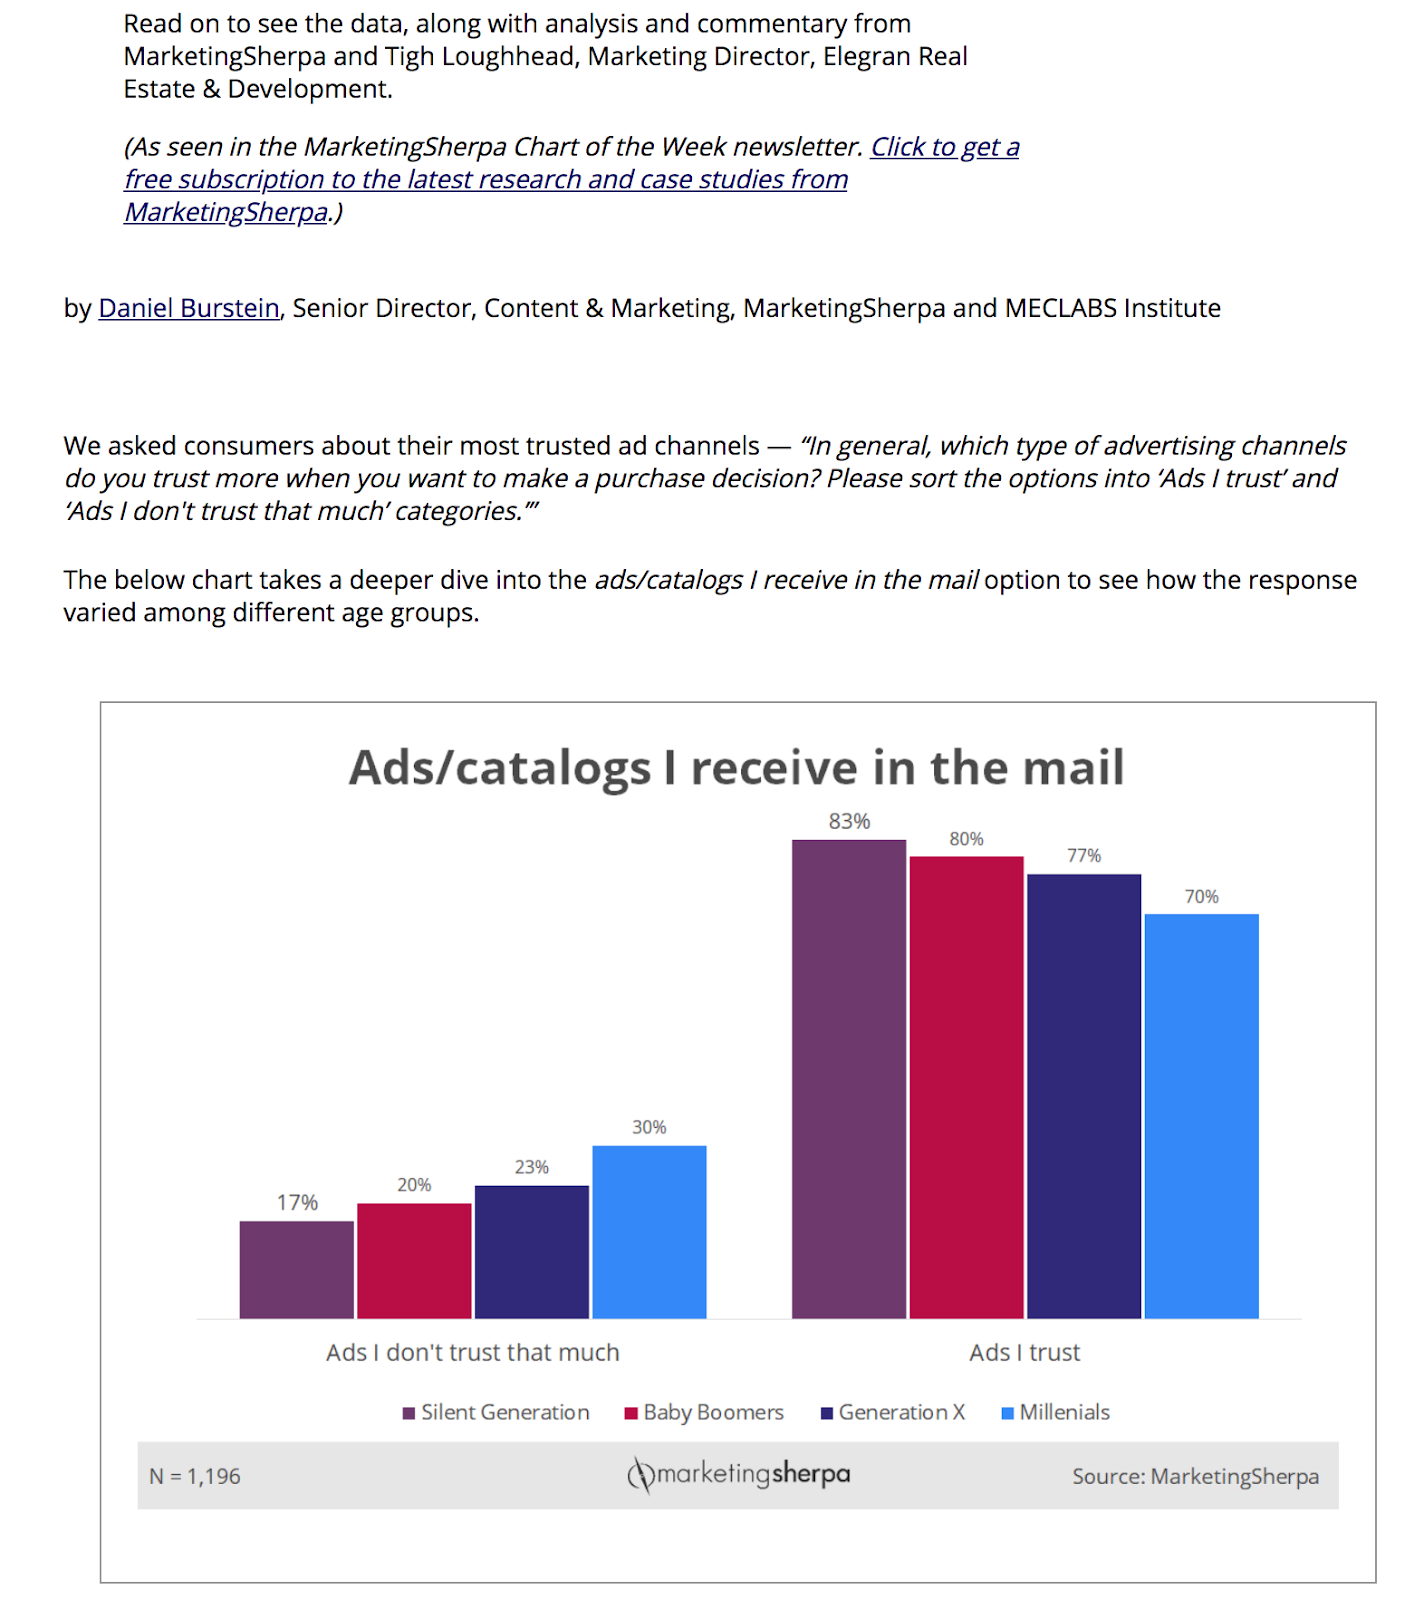 Tigh Loughhead featured in MarketingSherpa report on direct marketing trust by demographic group